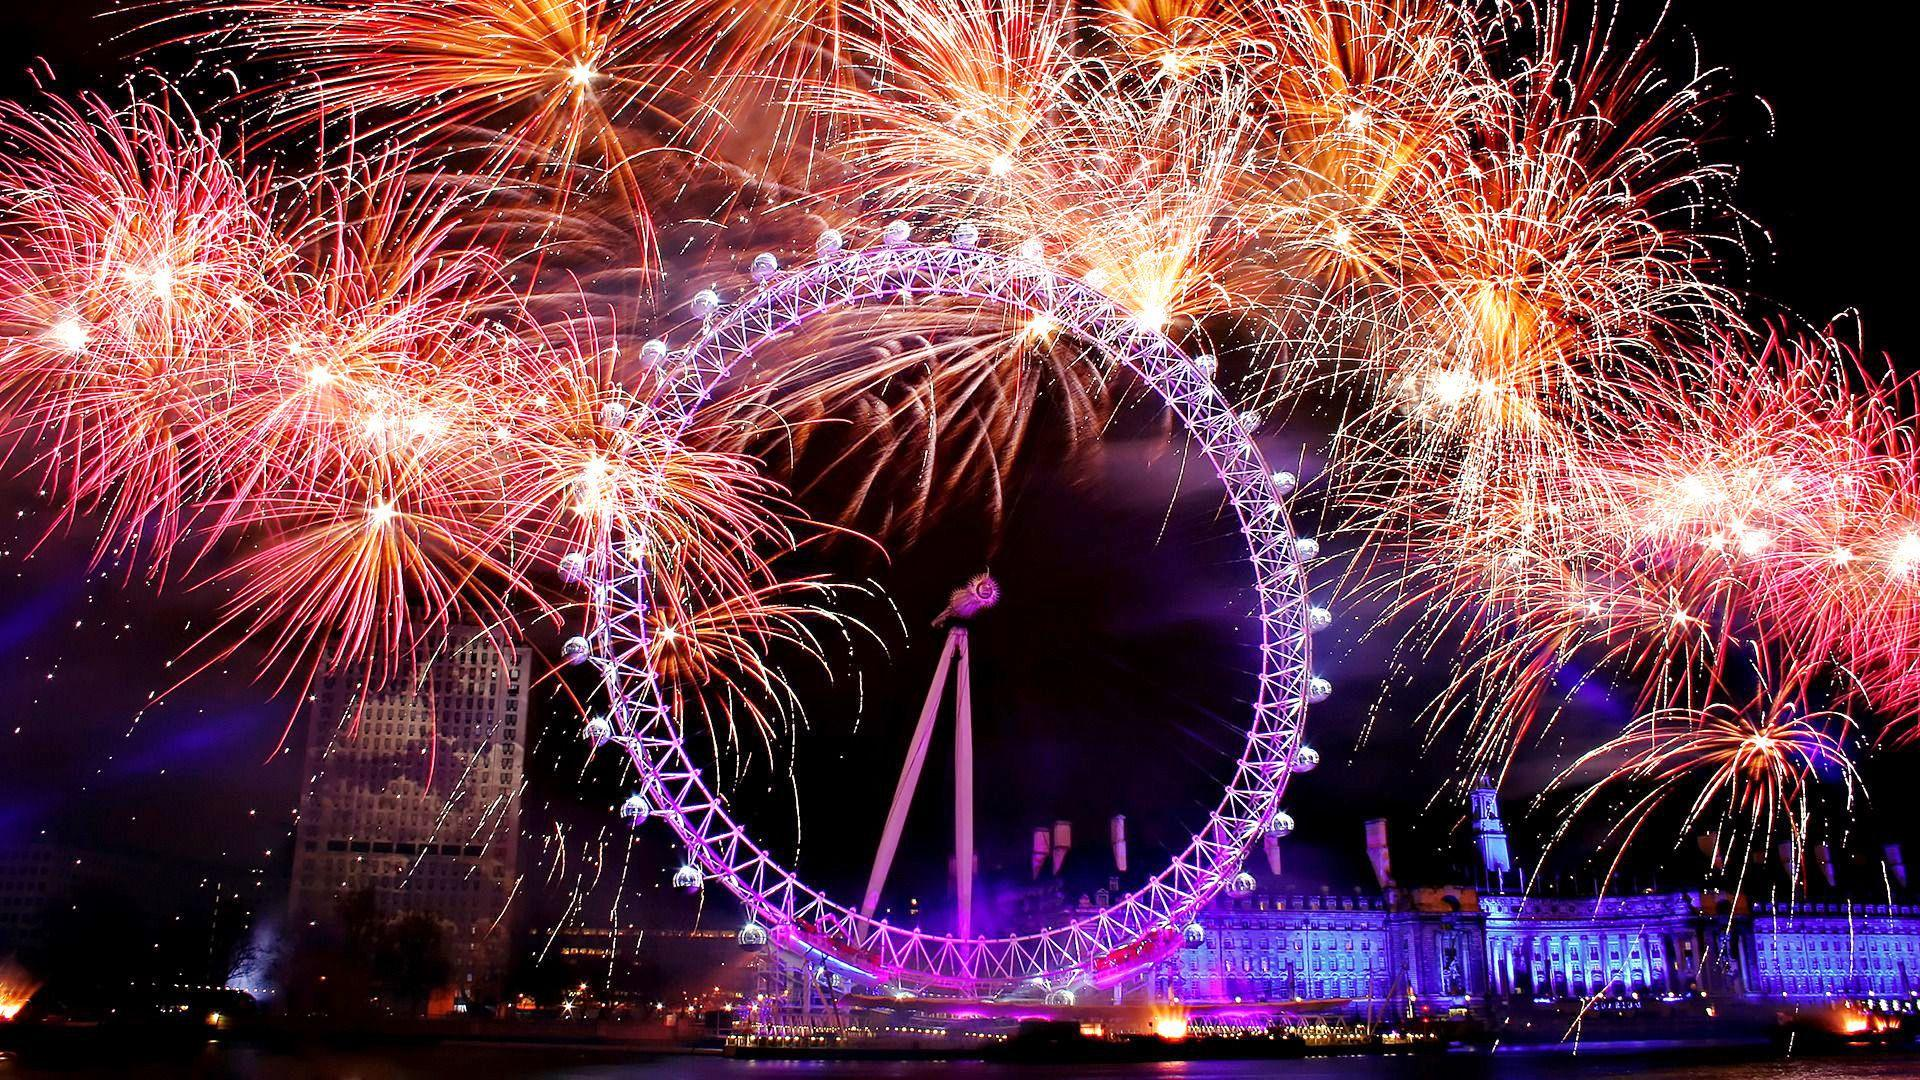 12 Cheerful London Eye New Year's Eve Wallpapers in HD for Free